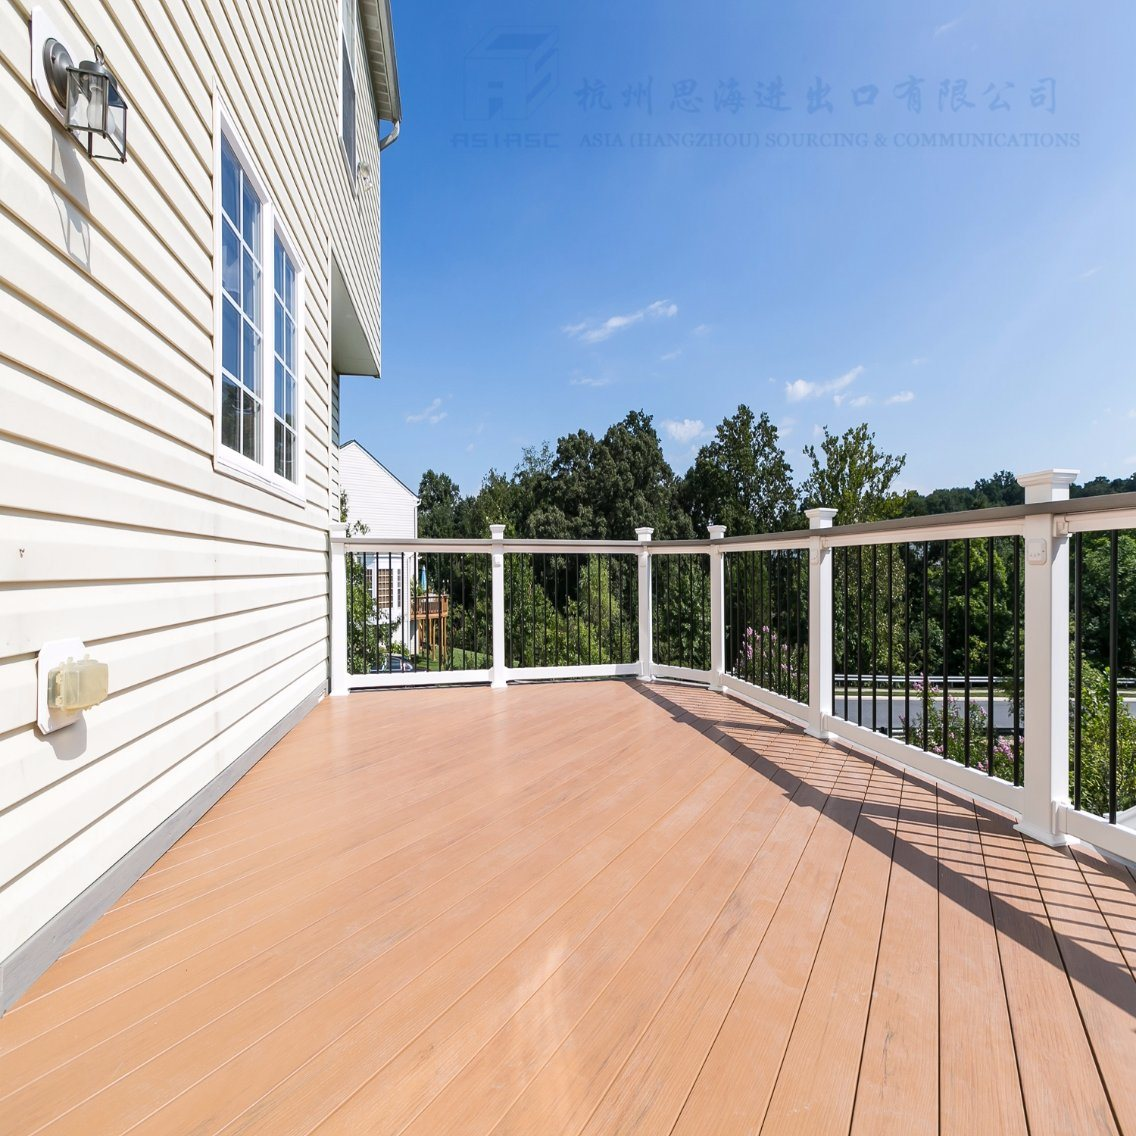 Super Seal Exterior Co-Extruded PVC Flooring for Balcony